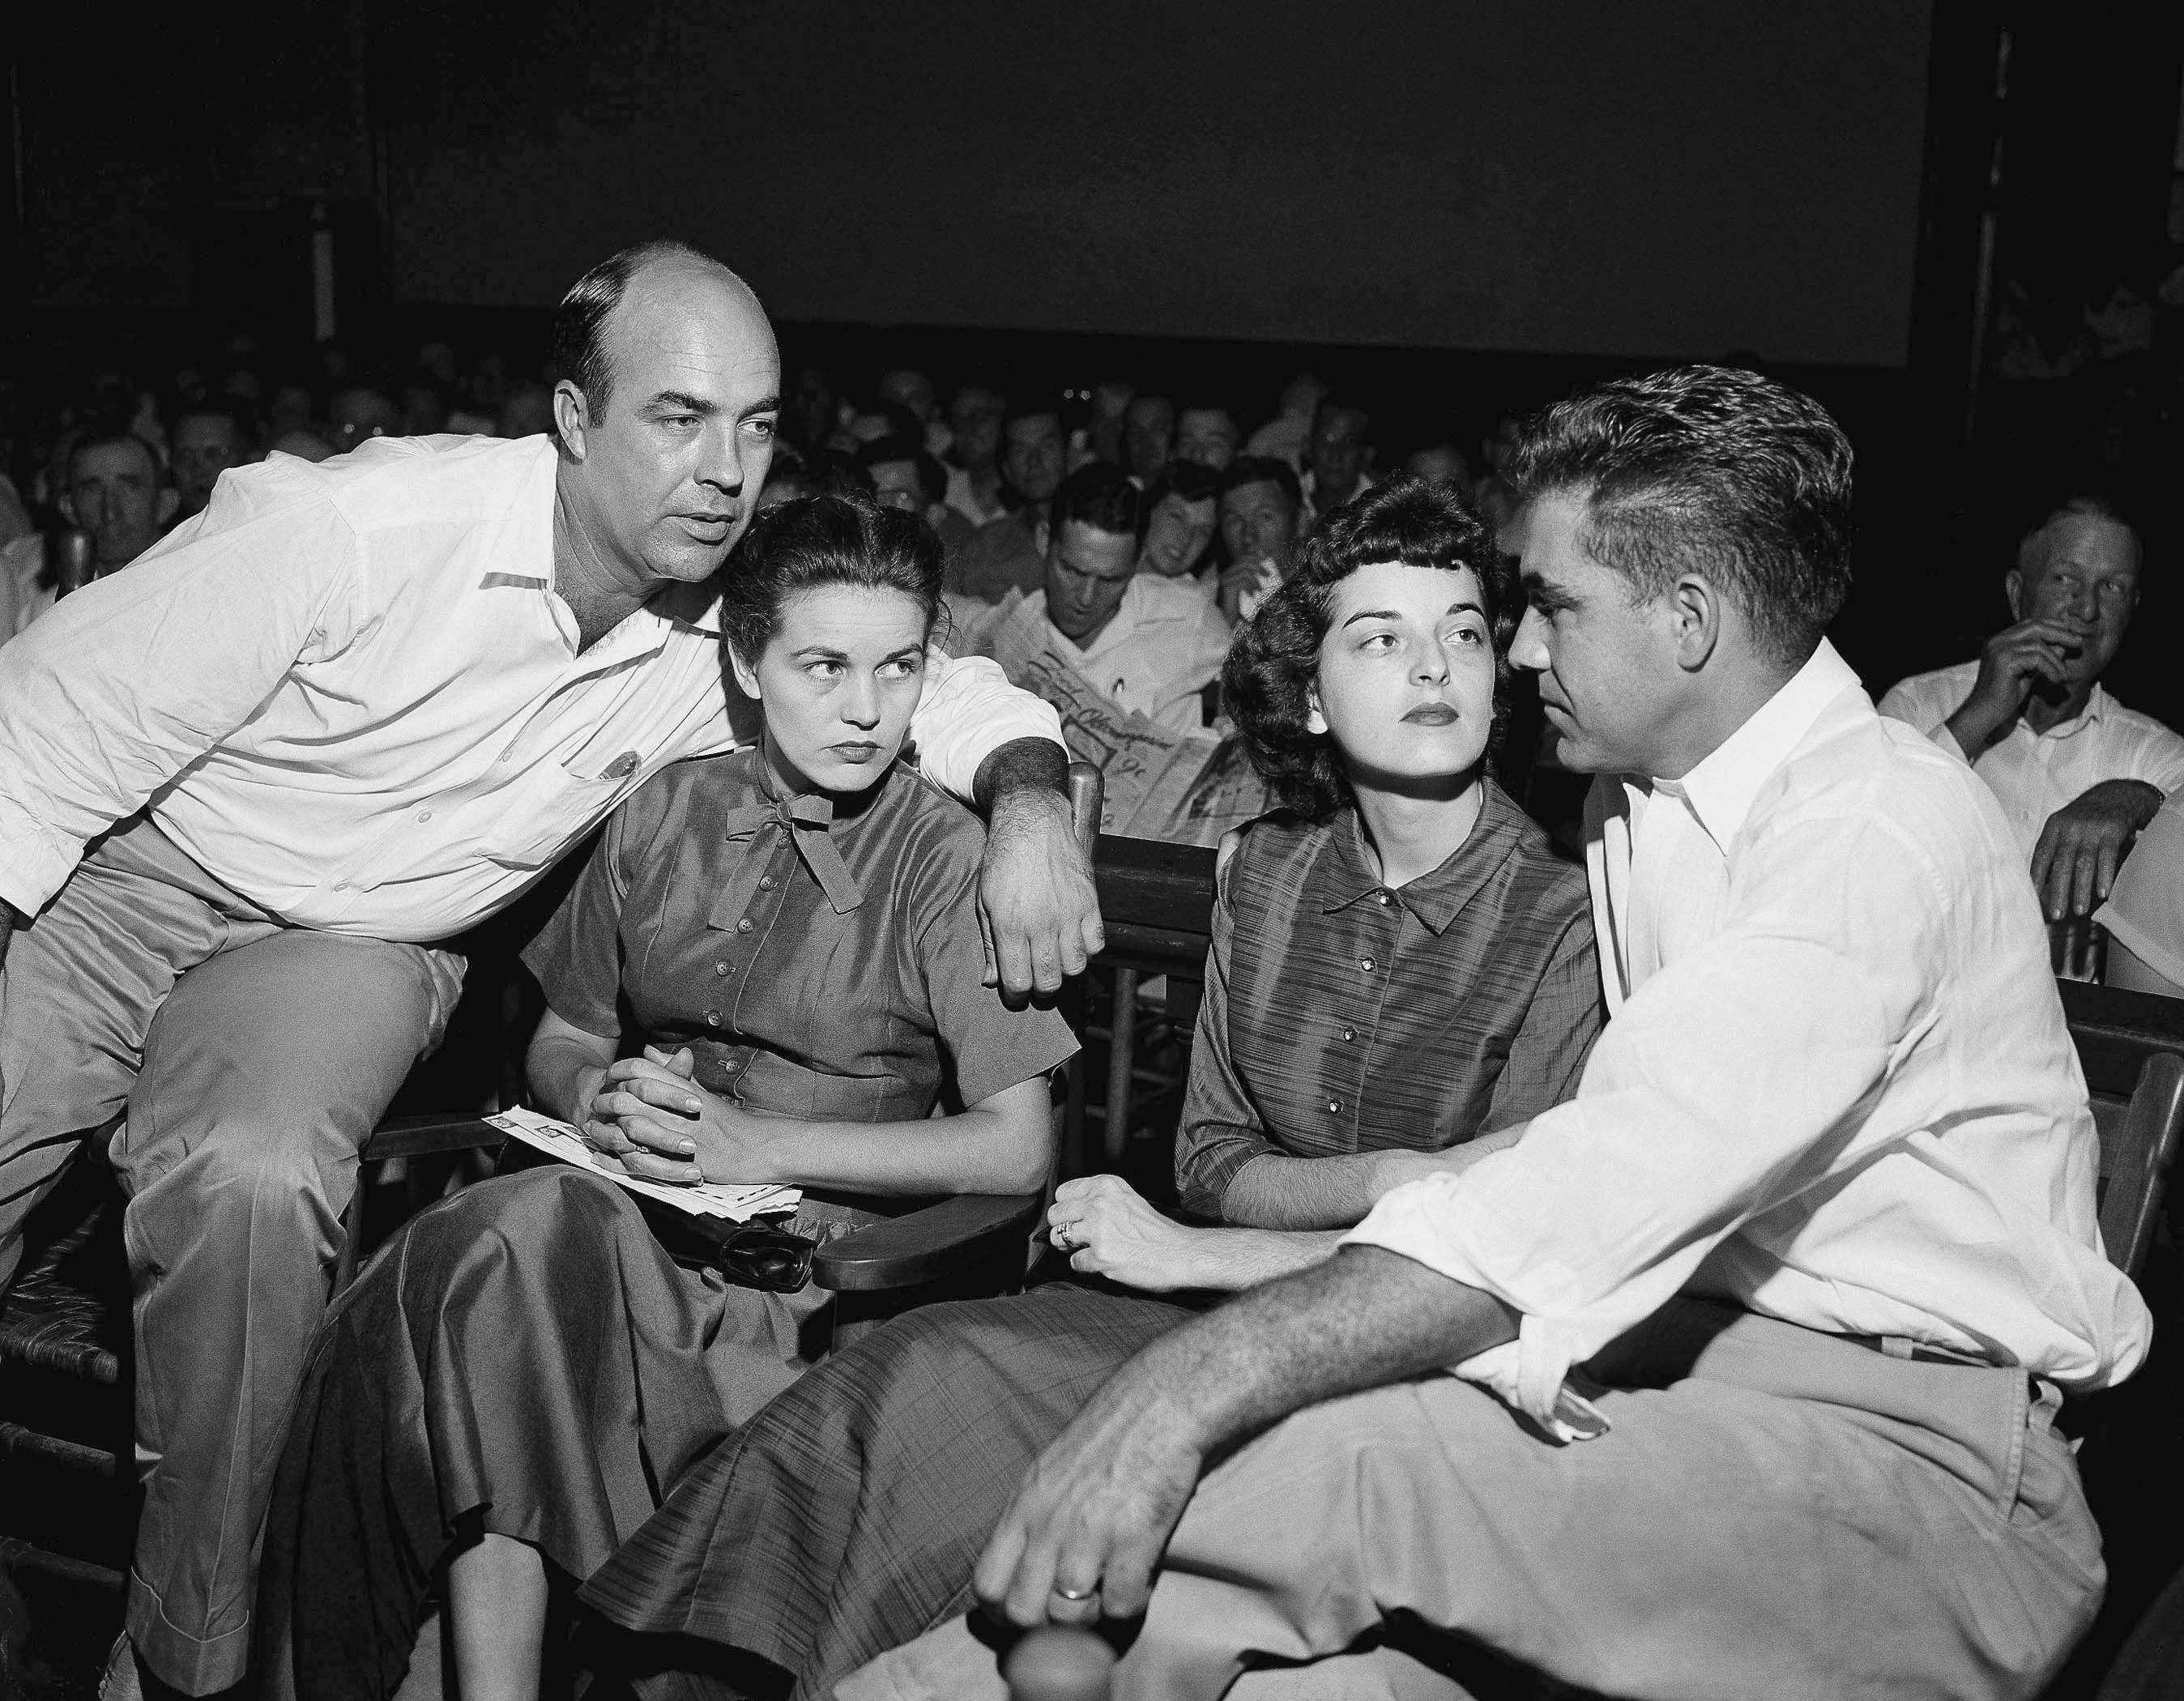 JW Milam, left, his wife, Roy Bryant, far right, and his wife Carolyn Bryant in a courtroom in Sumner, Mississippi